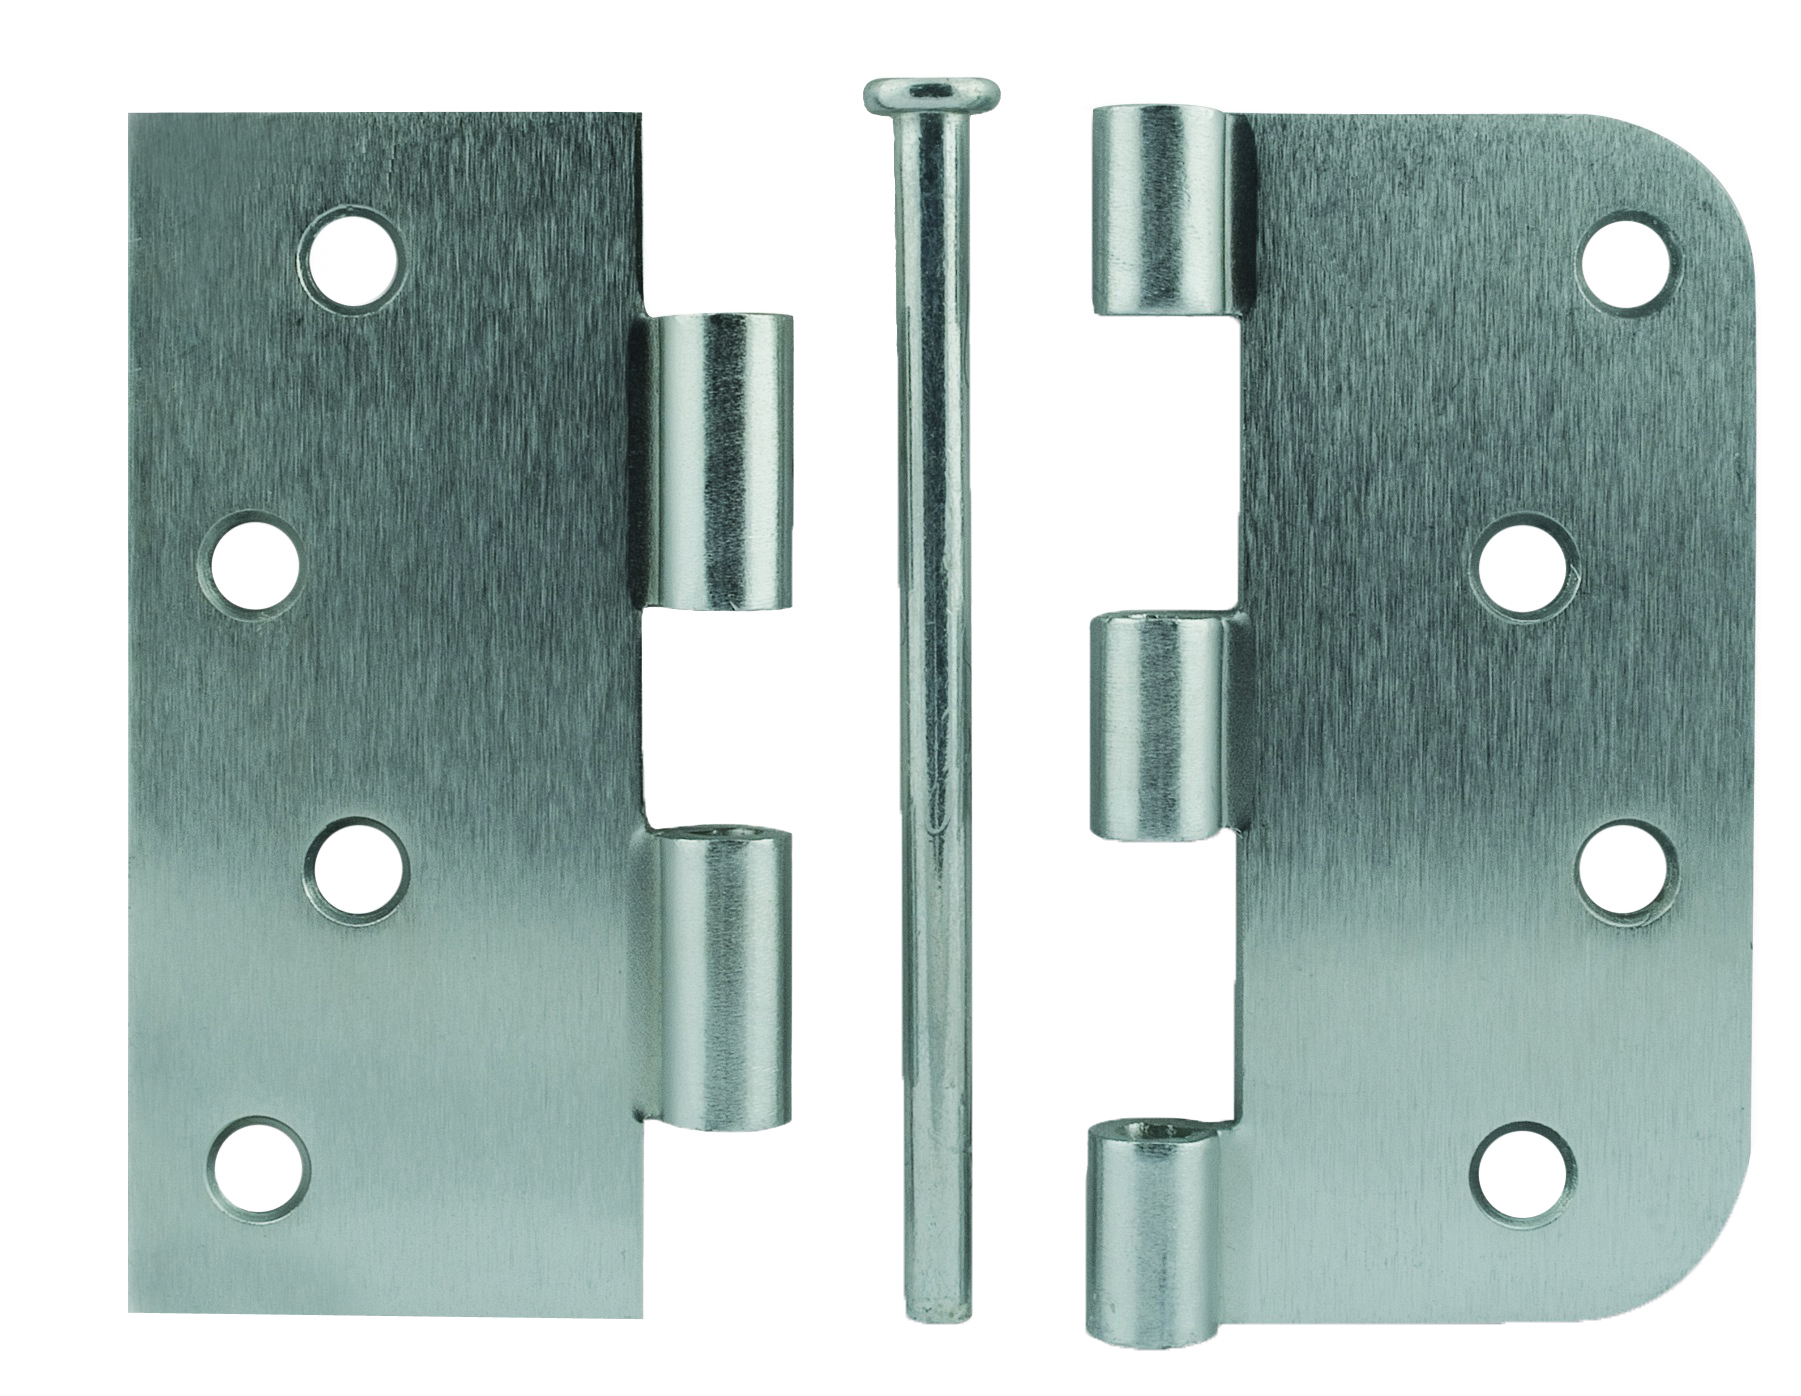 4″ x 5/8″ R Square Plain Bearing Hinge